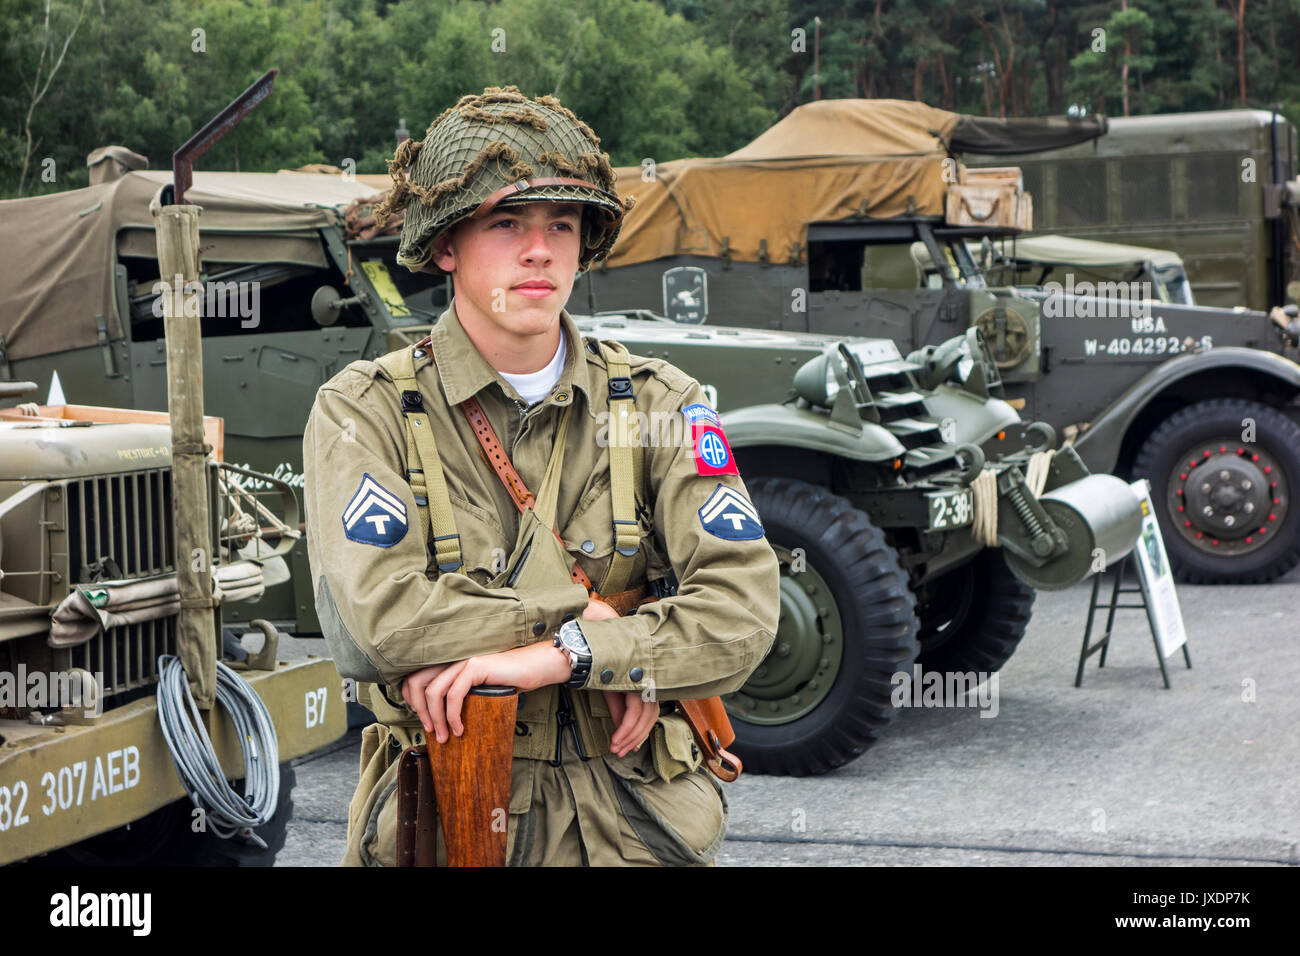 Young Re Enactor Posing In Ww2 Us Airborne Uniform With